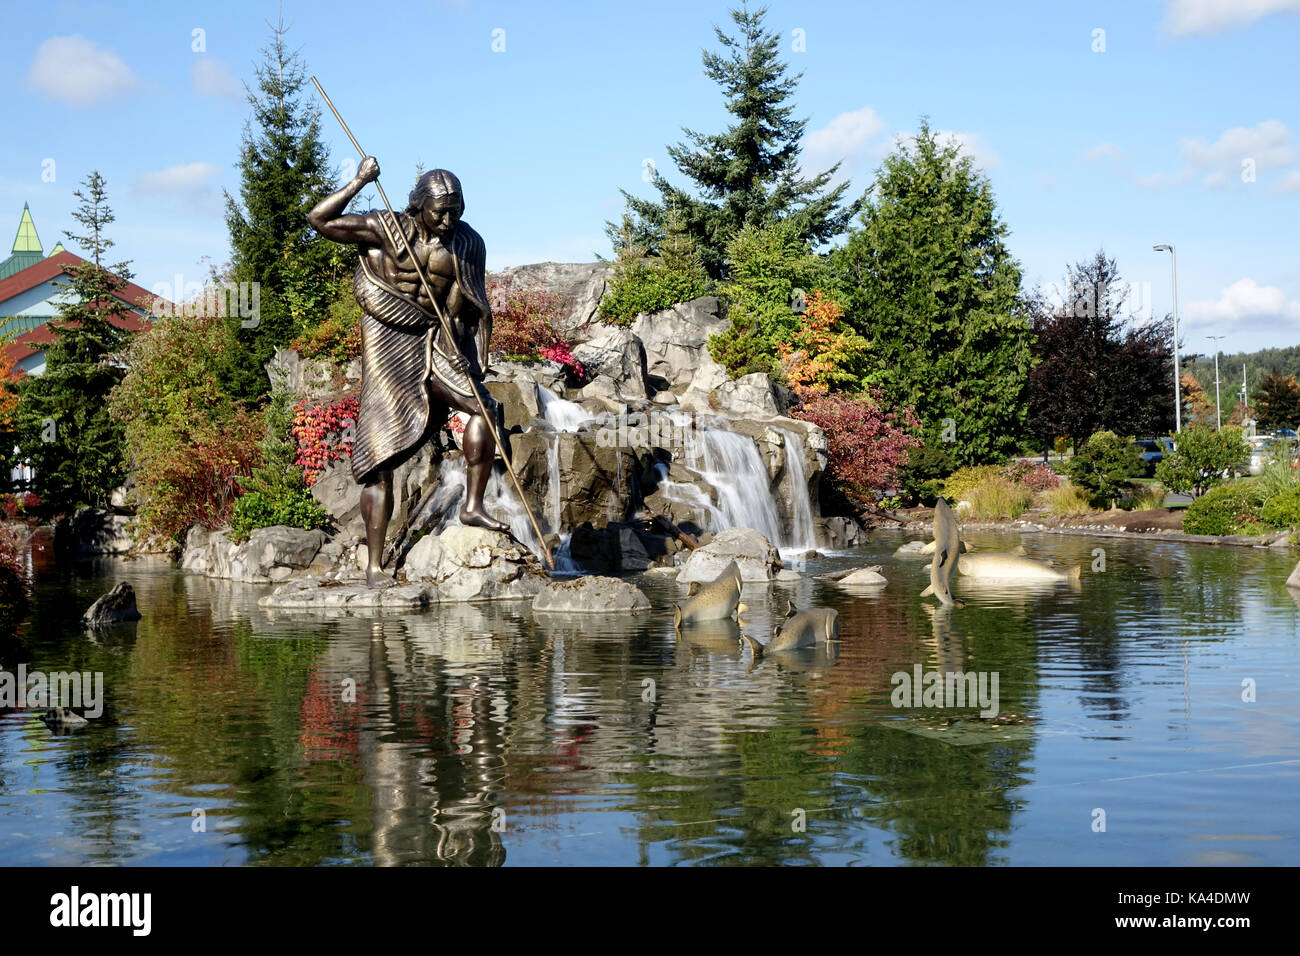 A sculpture of a Tulalip Indian sperarfishing for salmon. - Stock Image